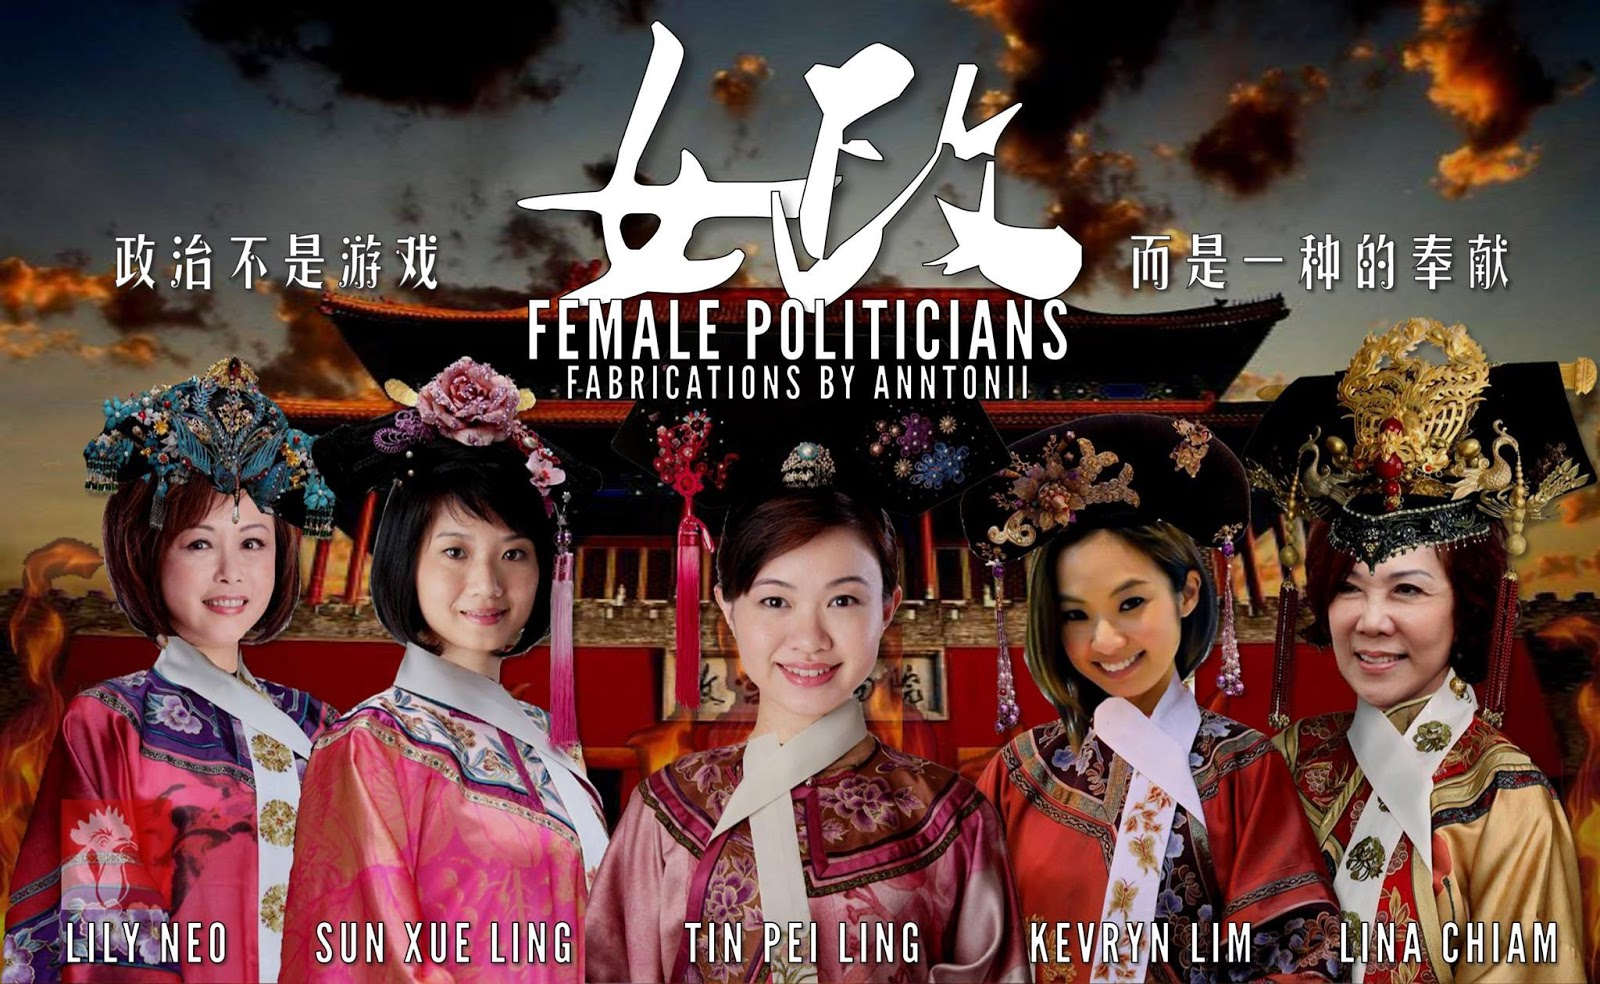 This poster is dedicated to all the Female Politicians in Singapore - with Lily Neo, Sun Xue Ling, Tin Pei Ling and Kevryn Lim - 林彤臻 and Lina Chiam